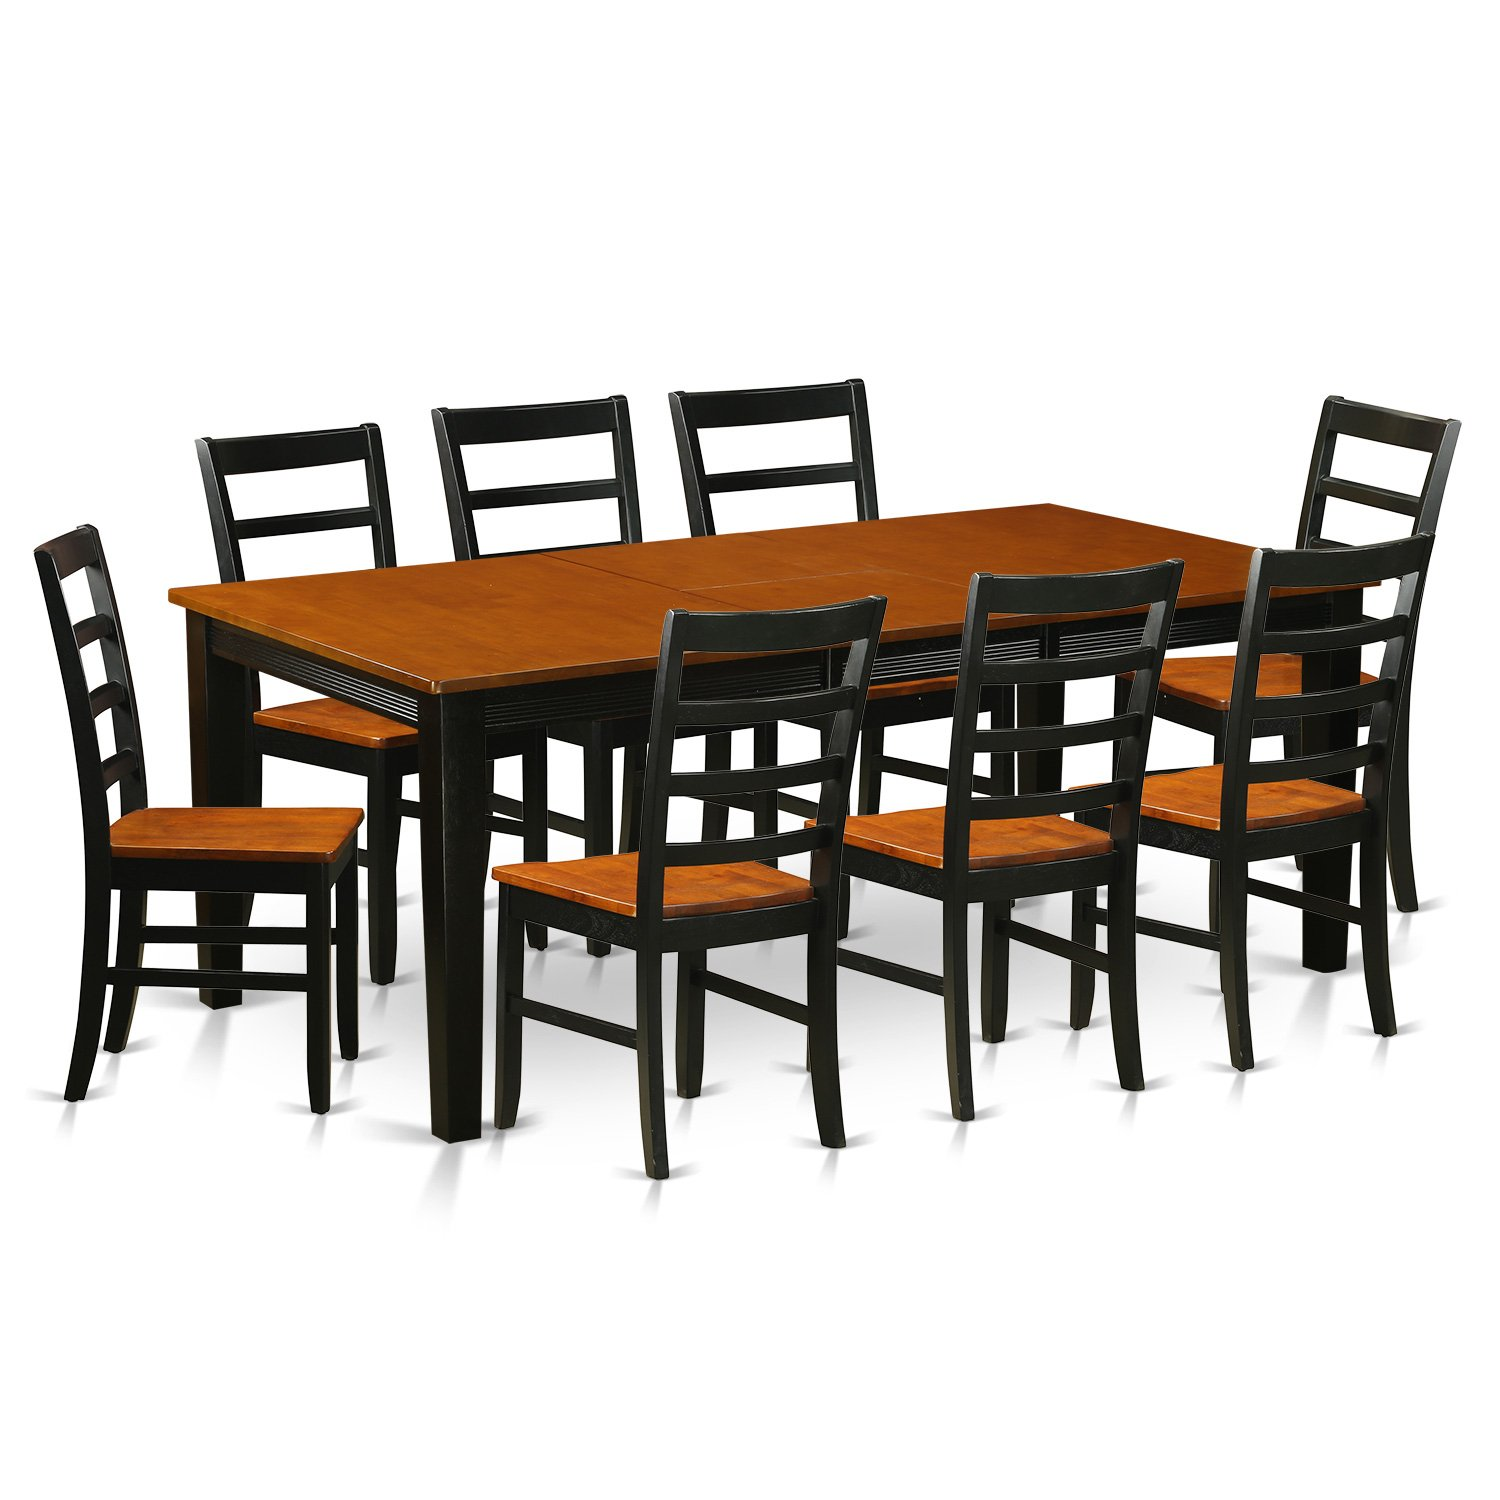 East West Furniture QUPF9-BCH-W 9 Piece Dining Table with 8 Wooden Chairs Set